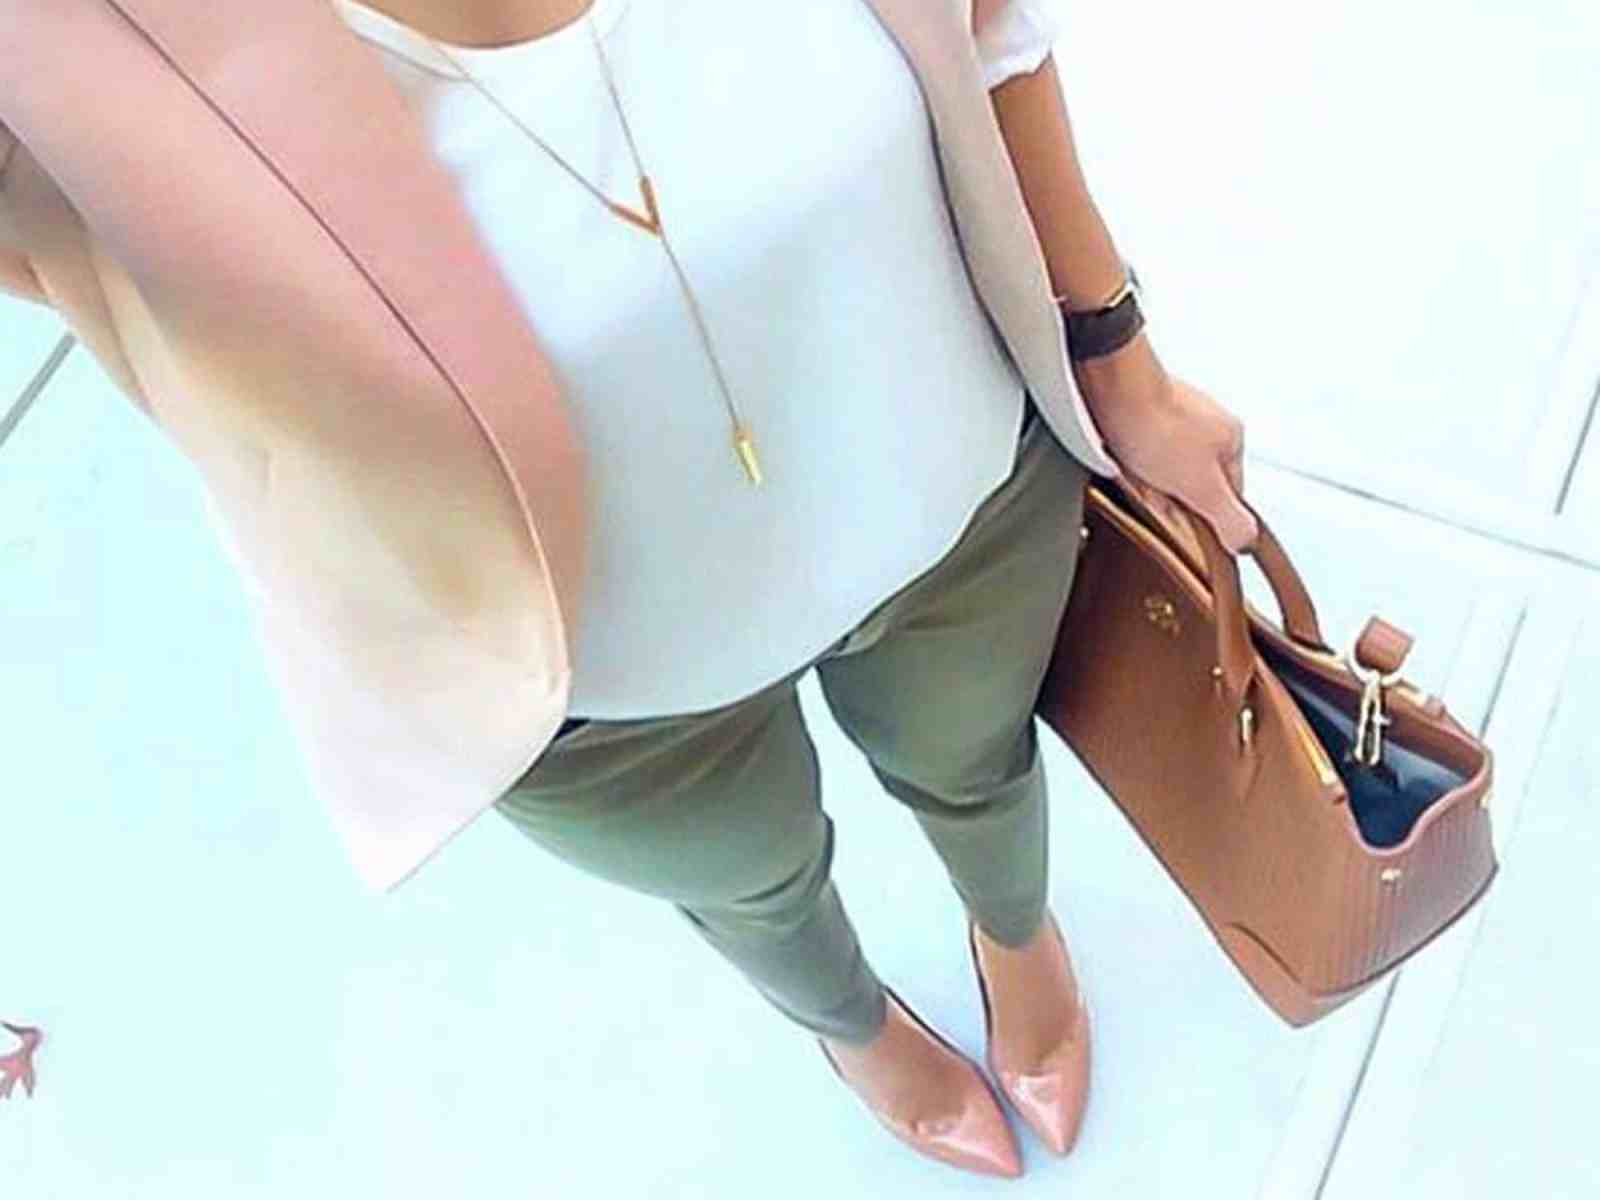 If you are preparing for your first internship but not sure the company's dress code, check out these business casual outfits you can't go wrong with!